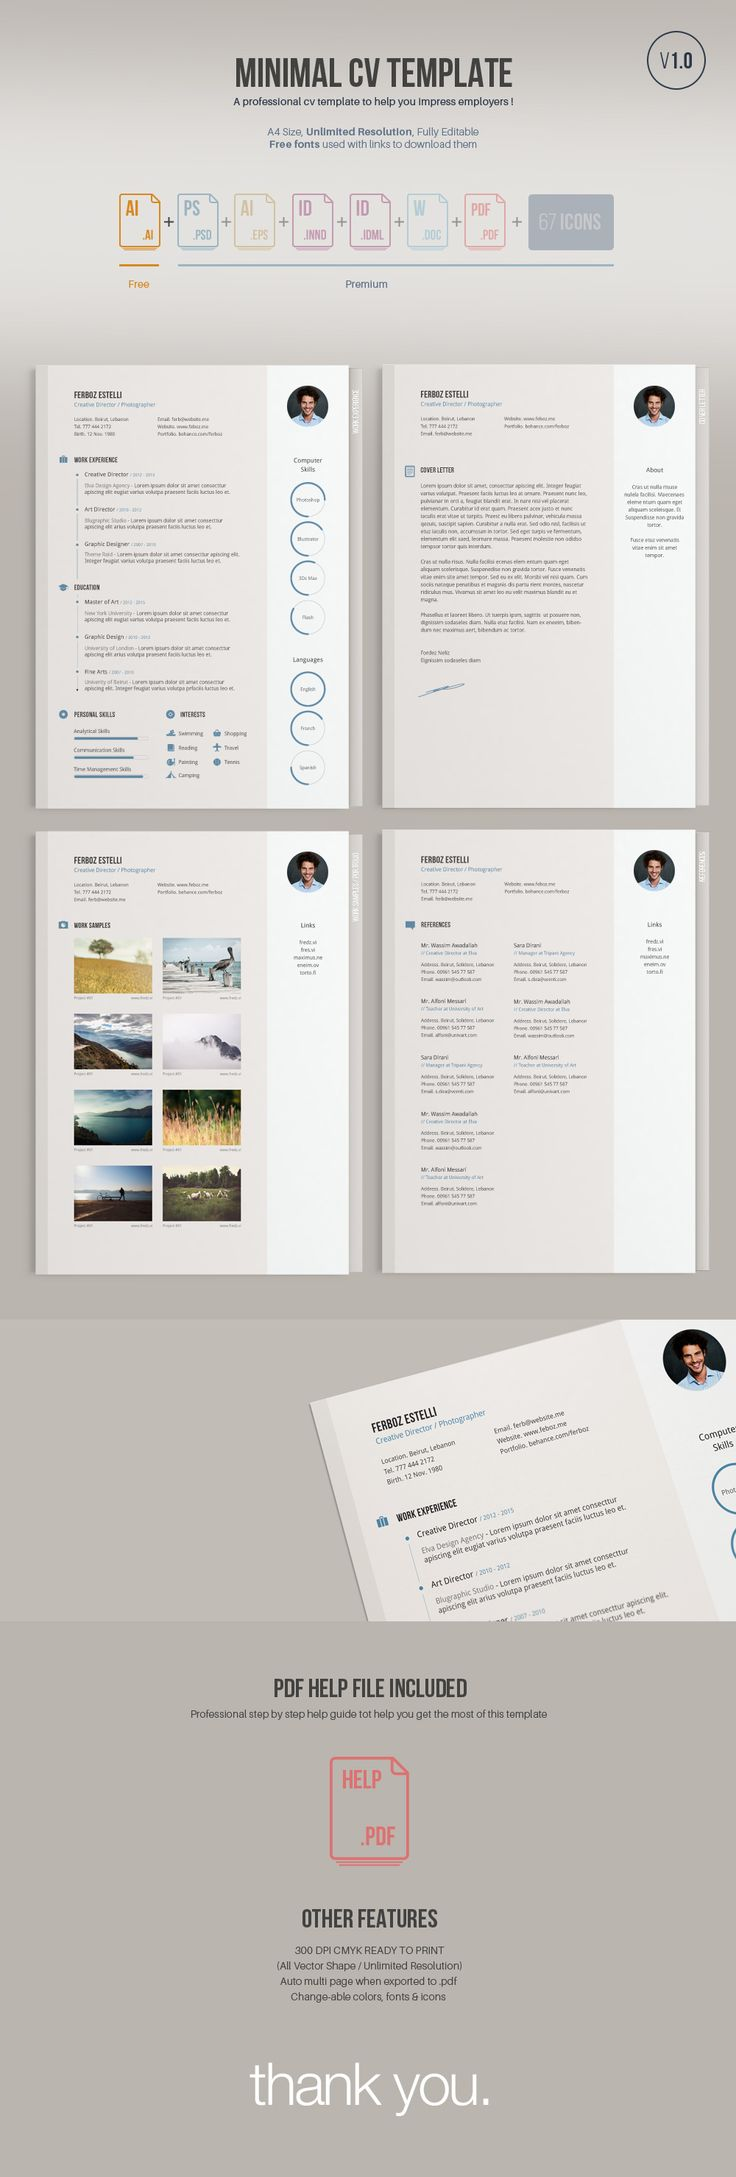 Free Cool Resume Templates Resume Templates Cool Regarding